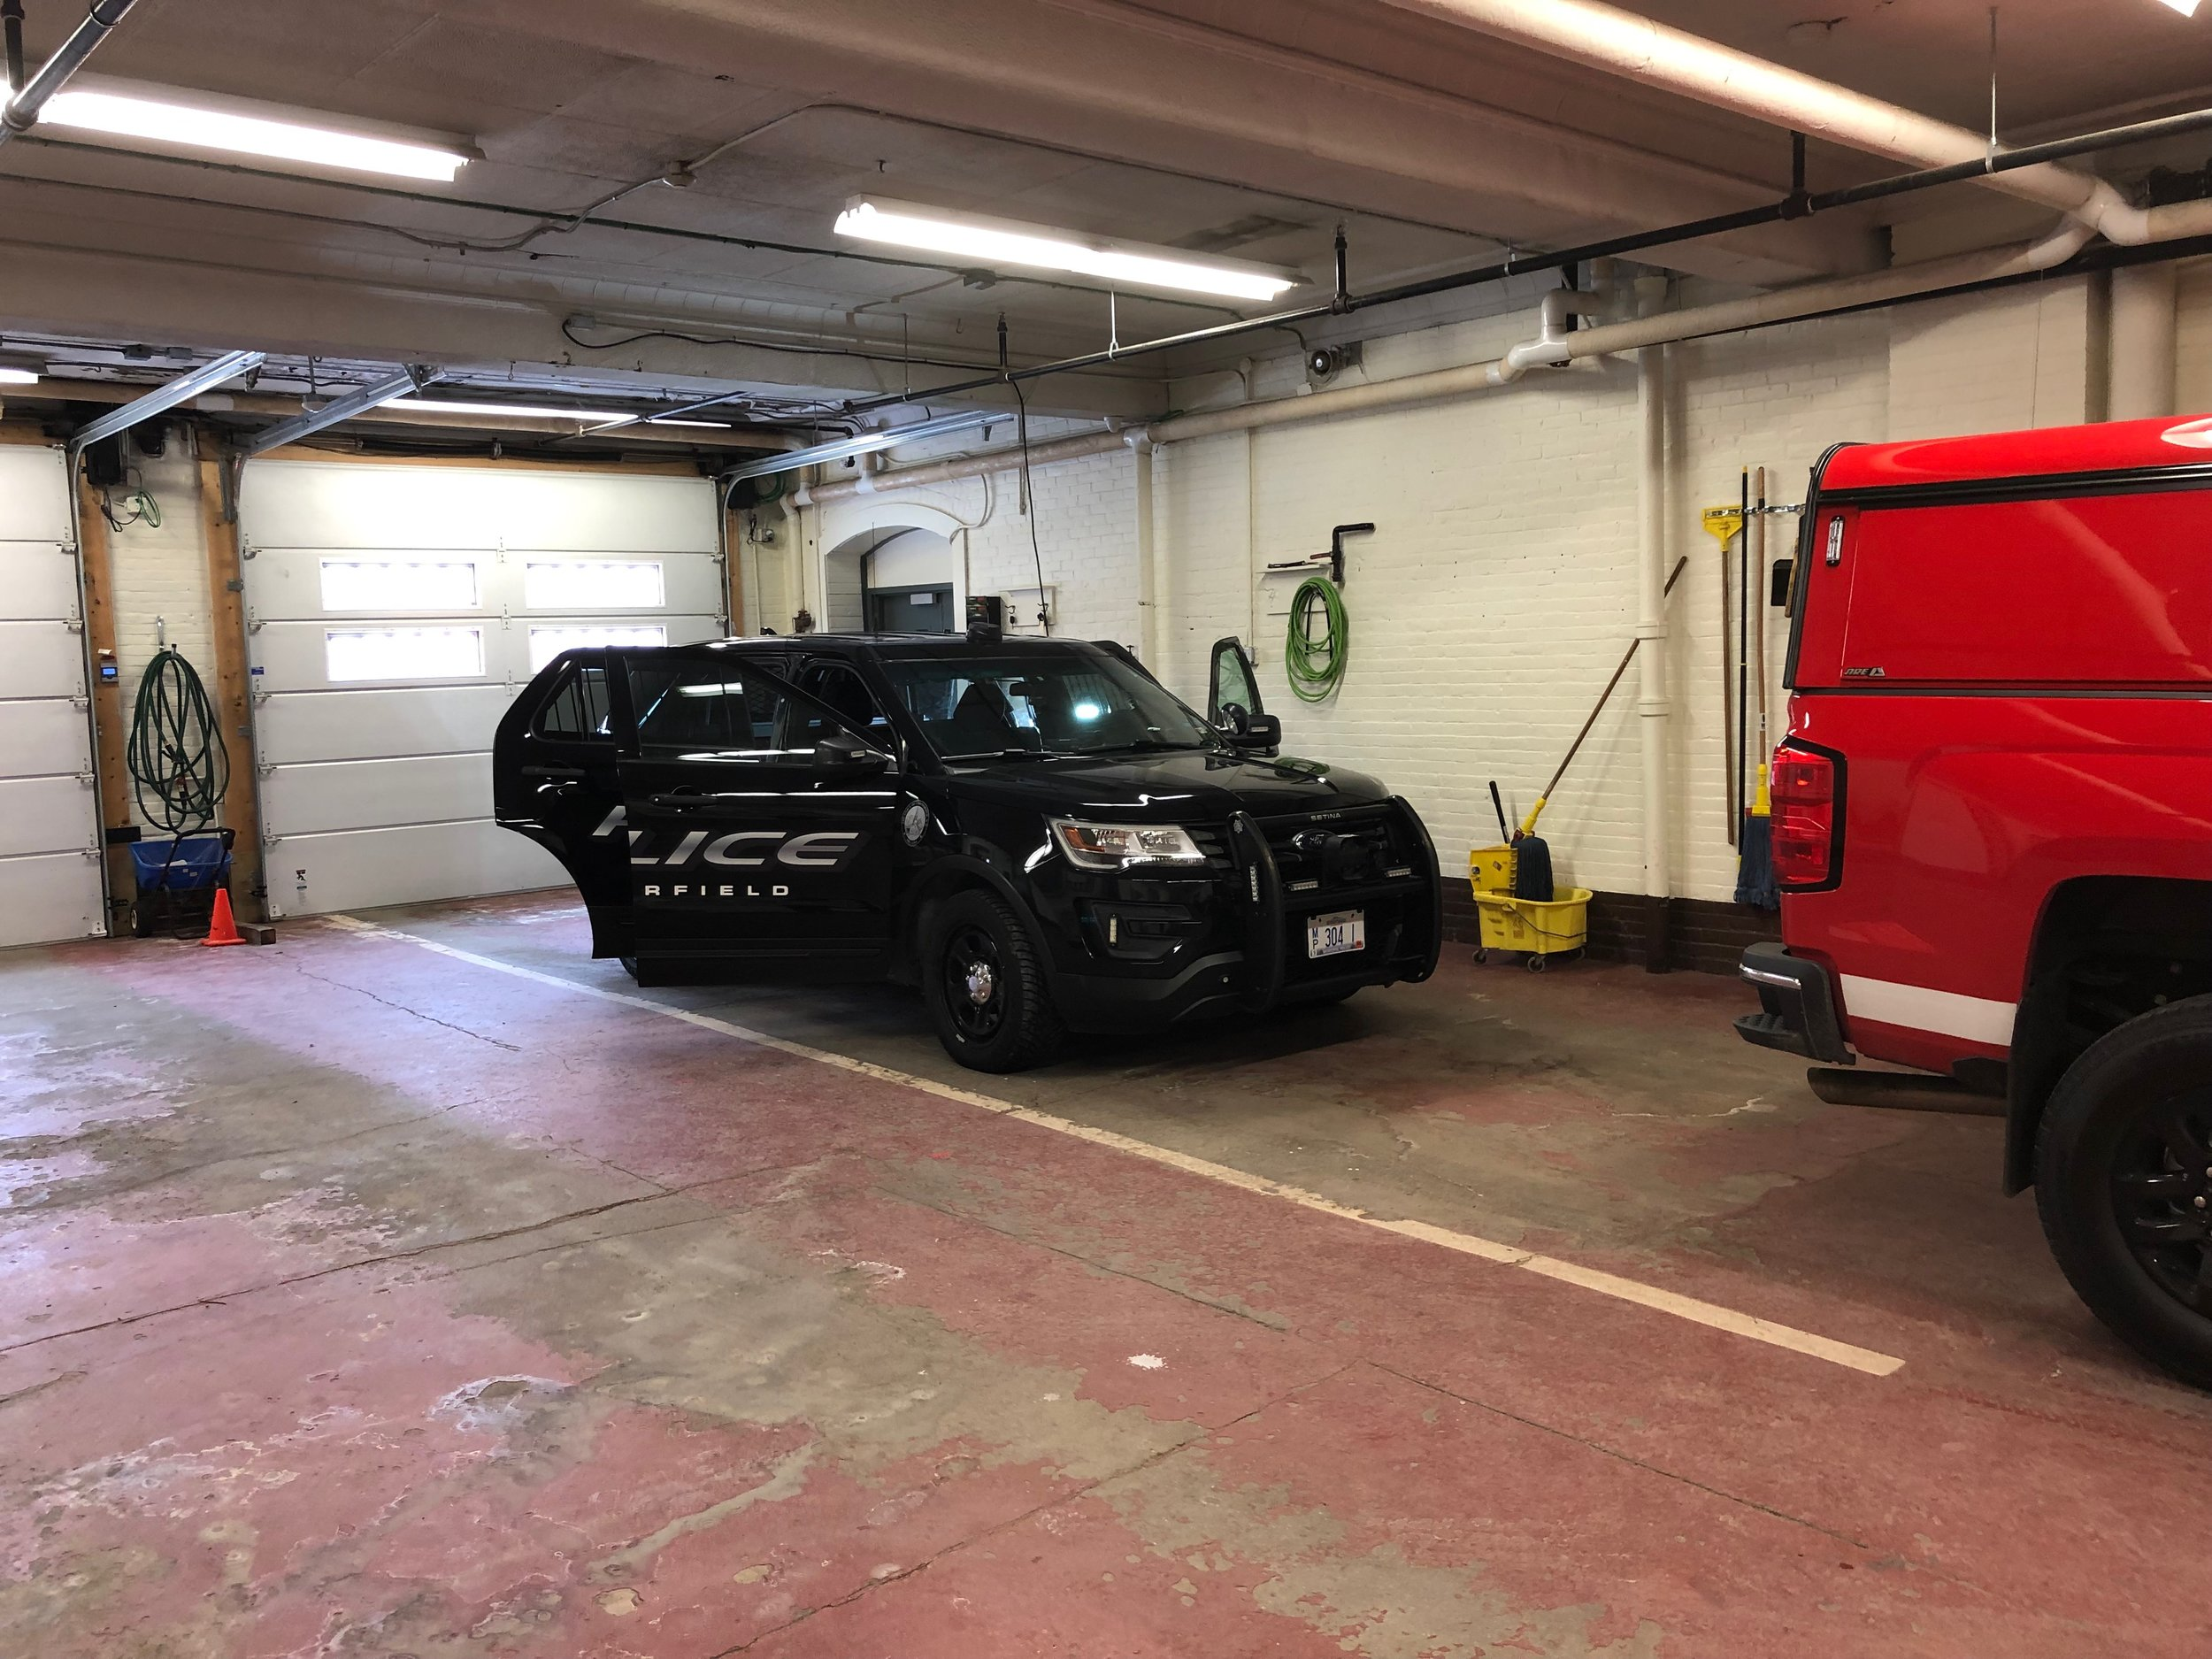 Chesterfield Police cruiser also in for some work.